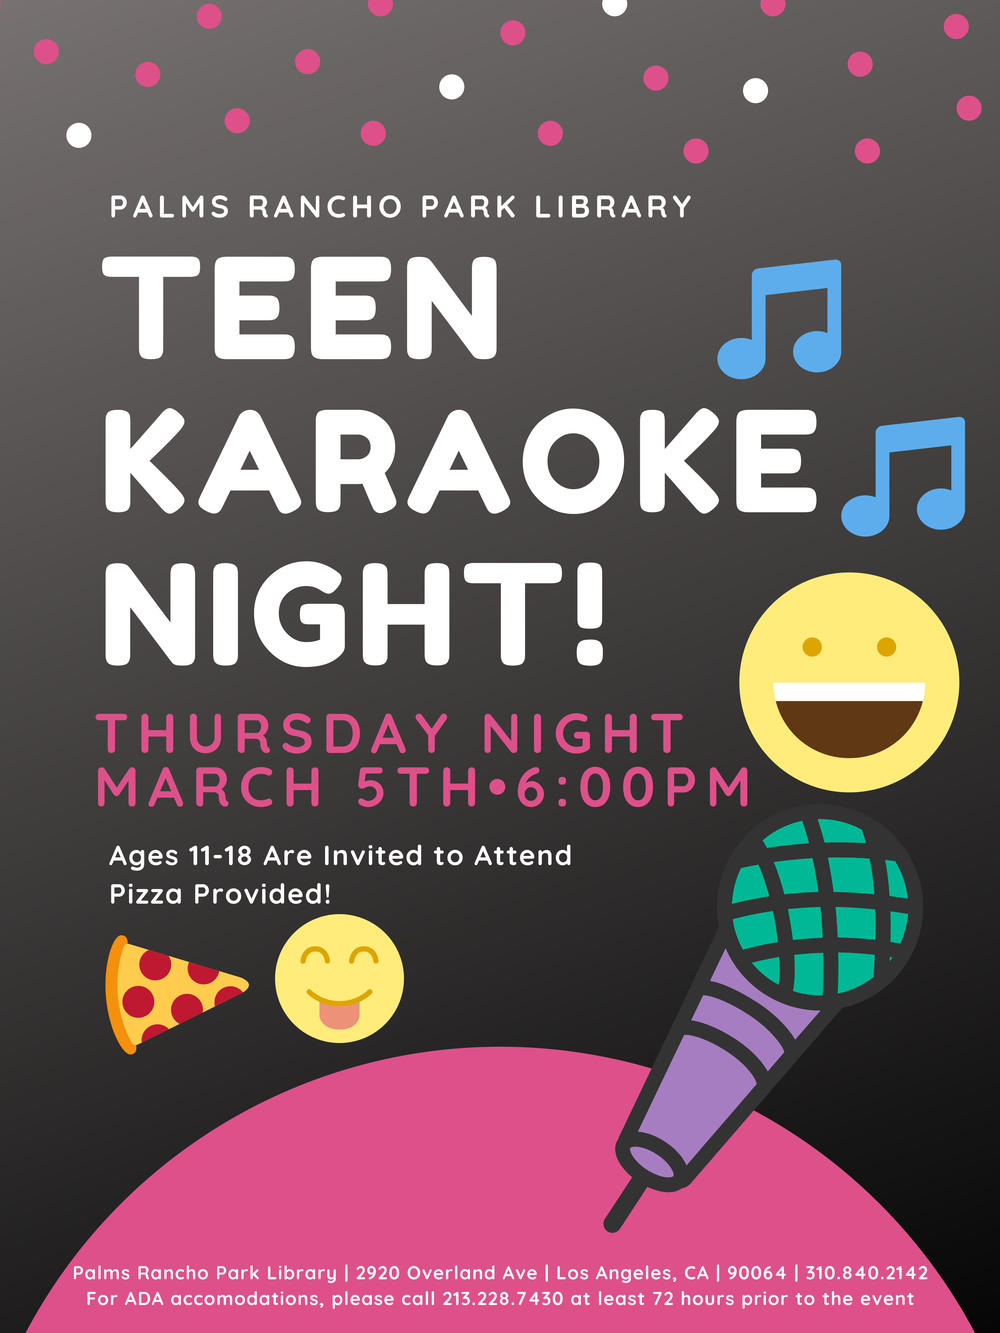 Teen Karaoke Night!